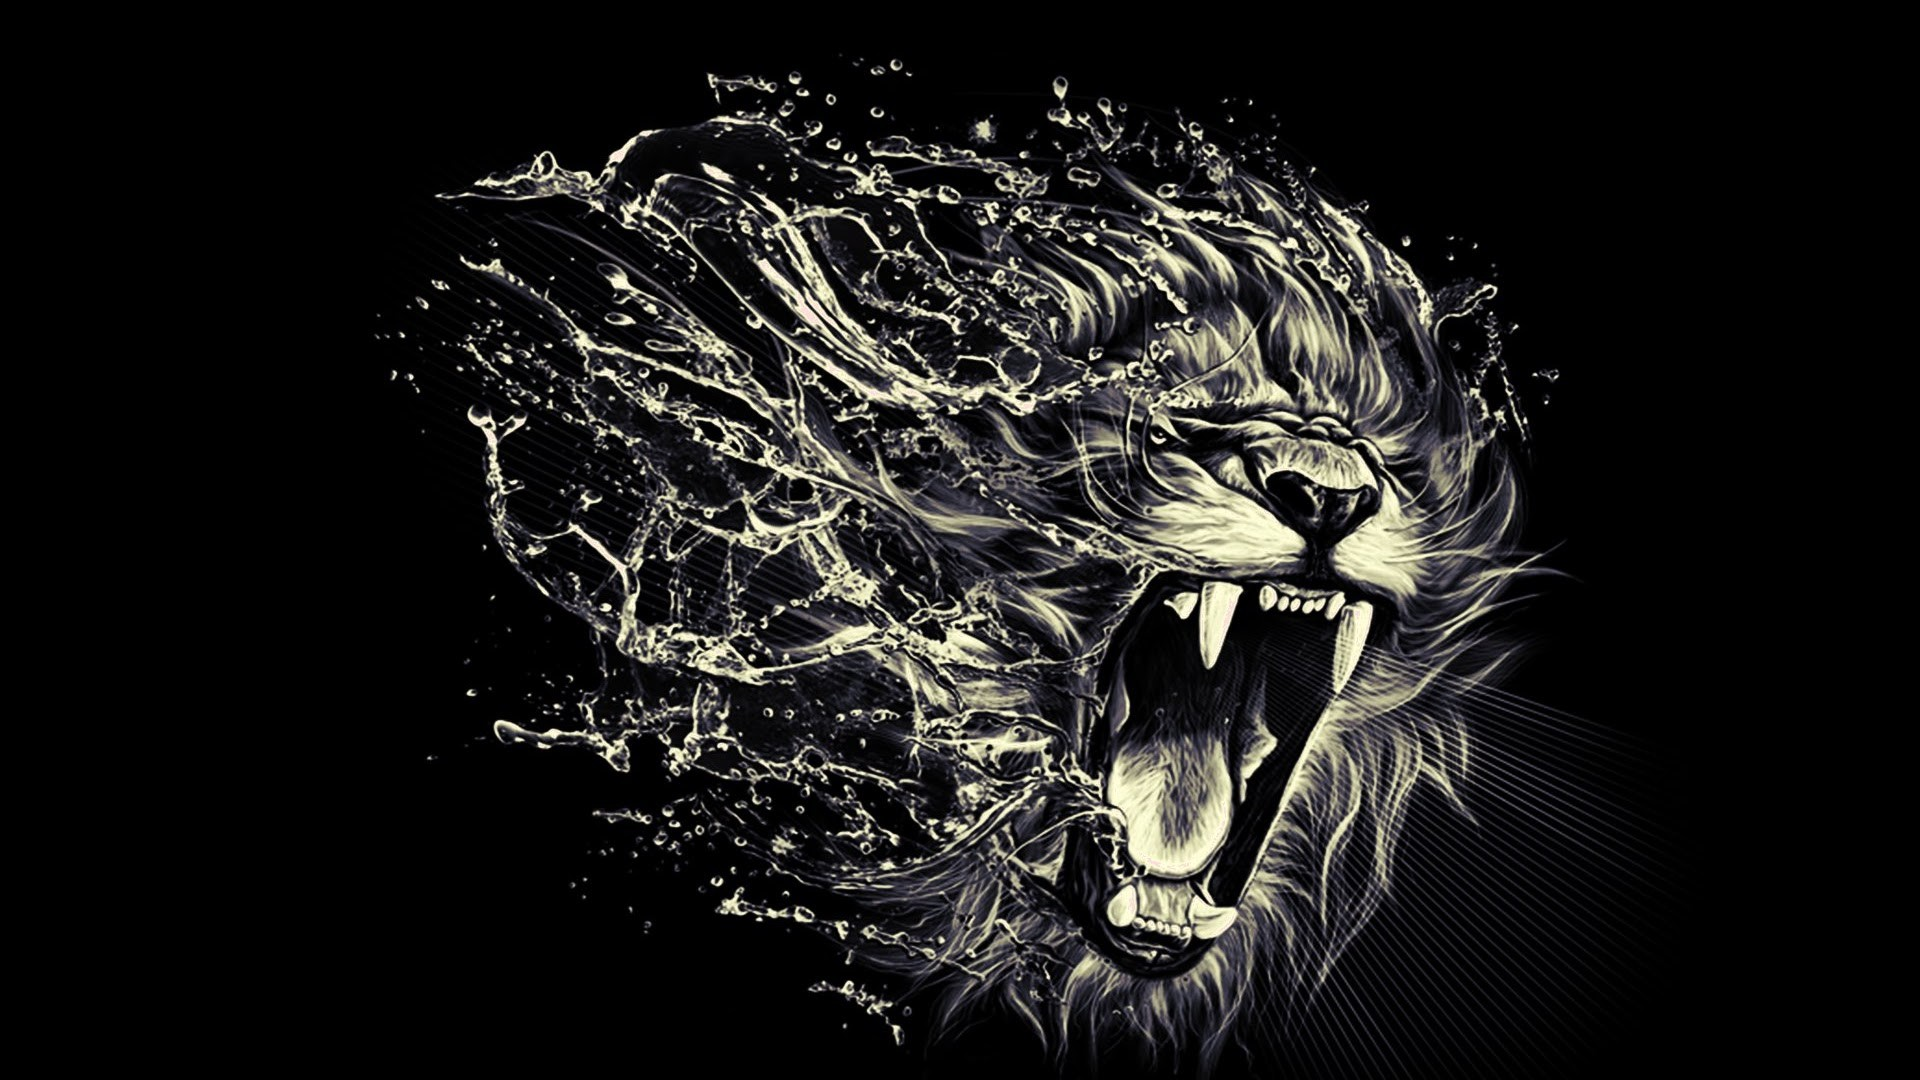 lion hd wallpapers download   HD Wallpapers   Pinterest   Lion wallpaper  and Wallpaper